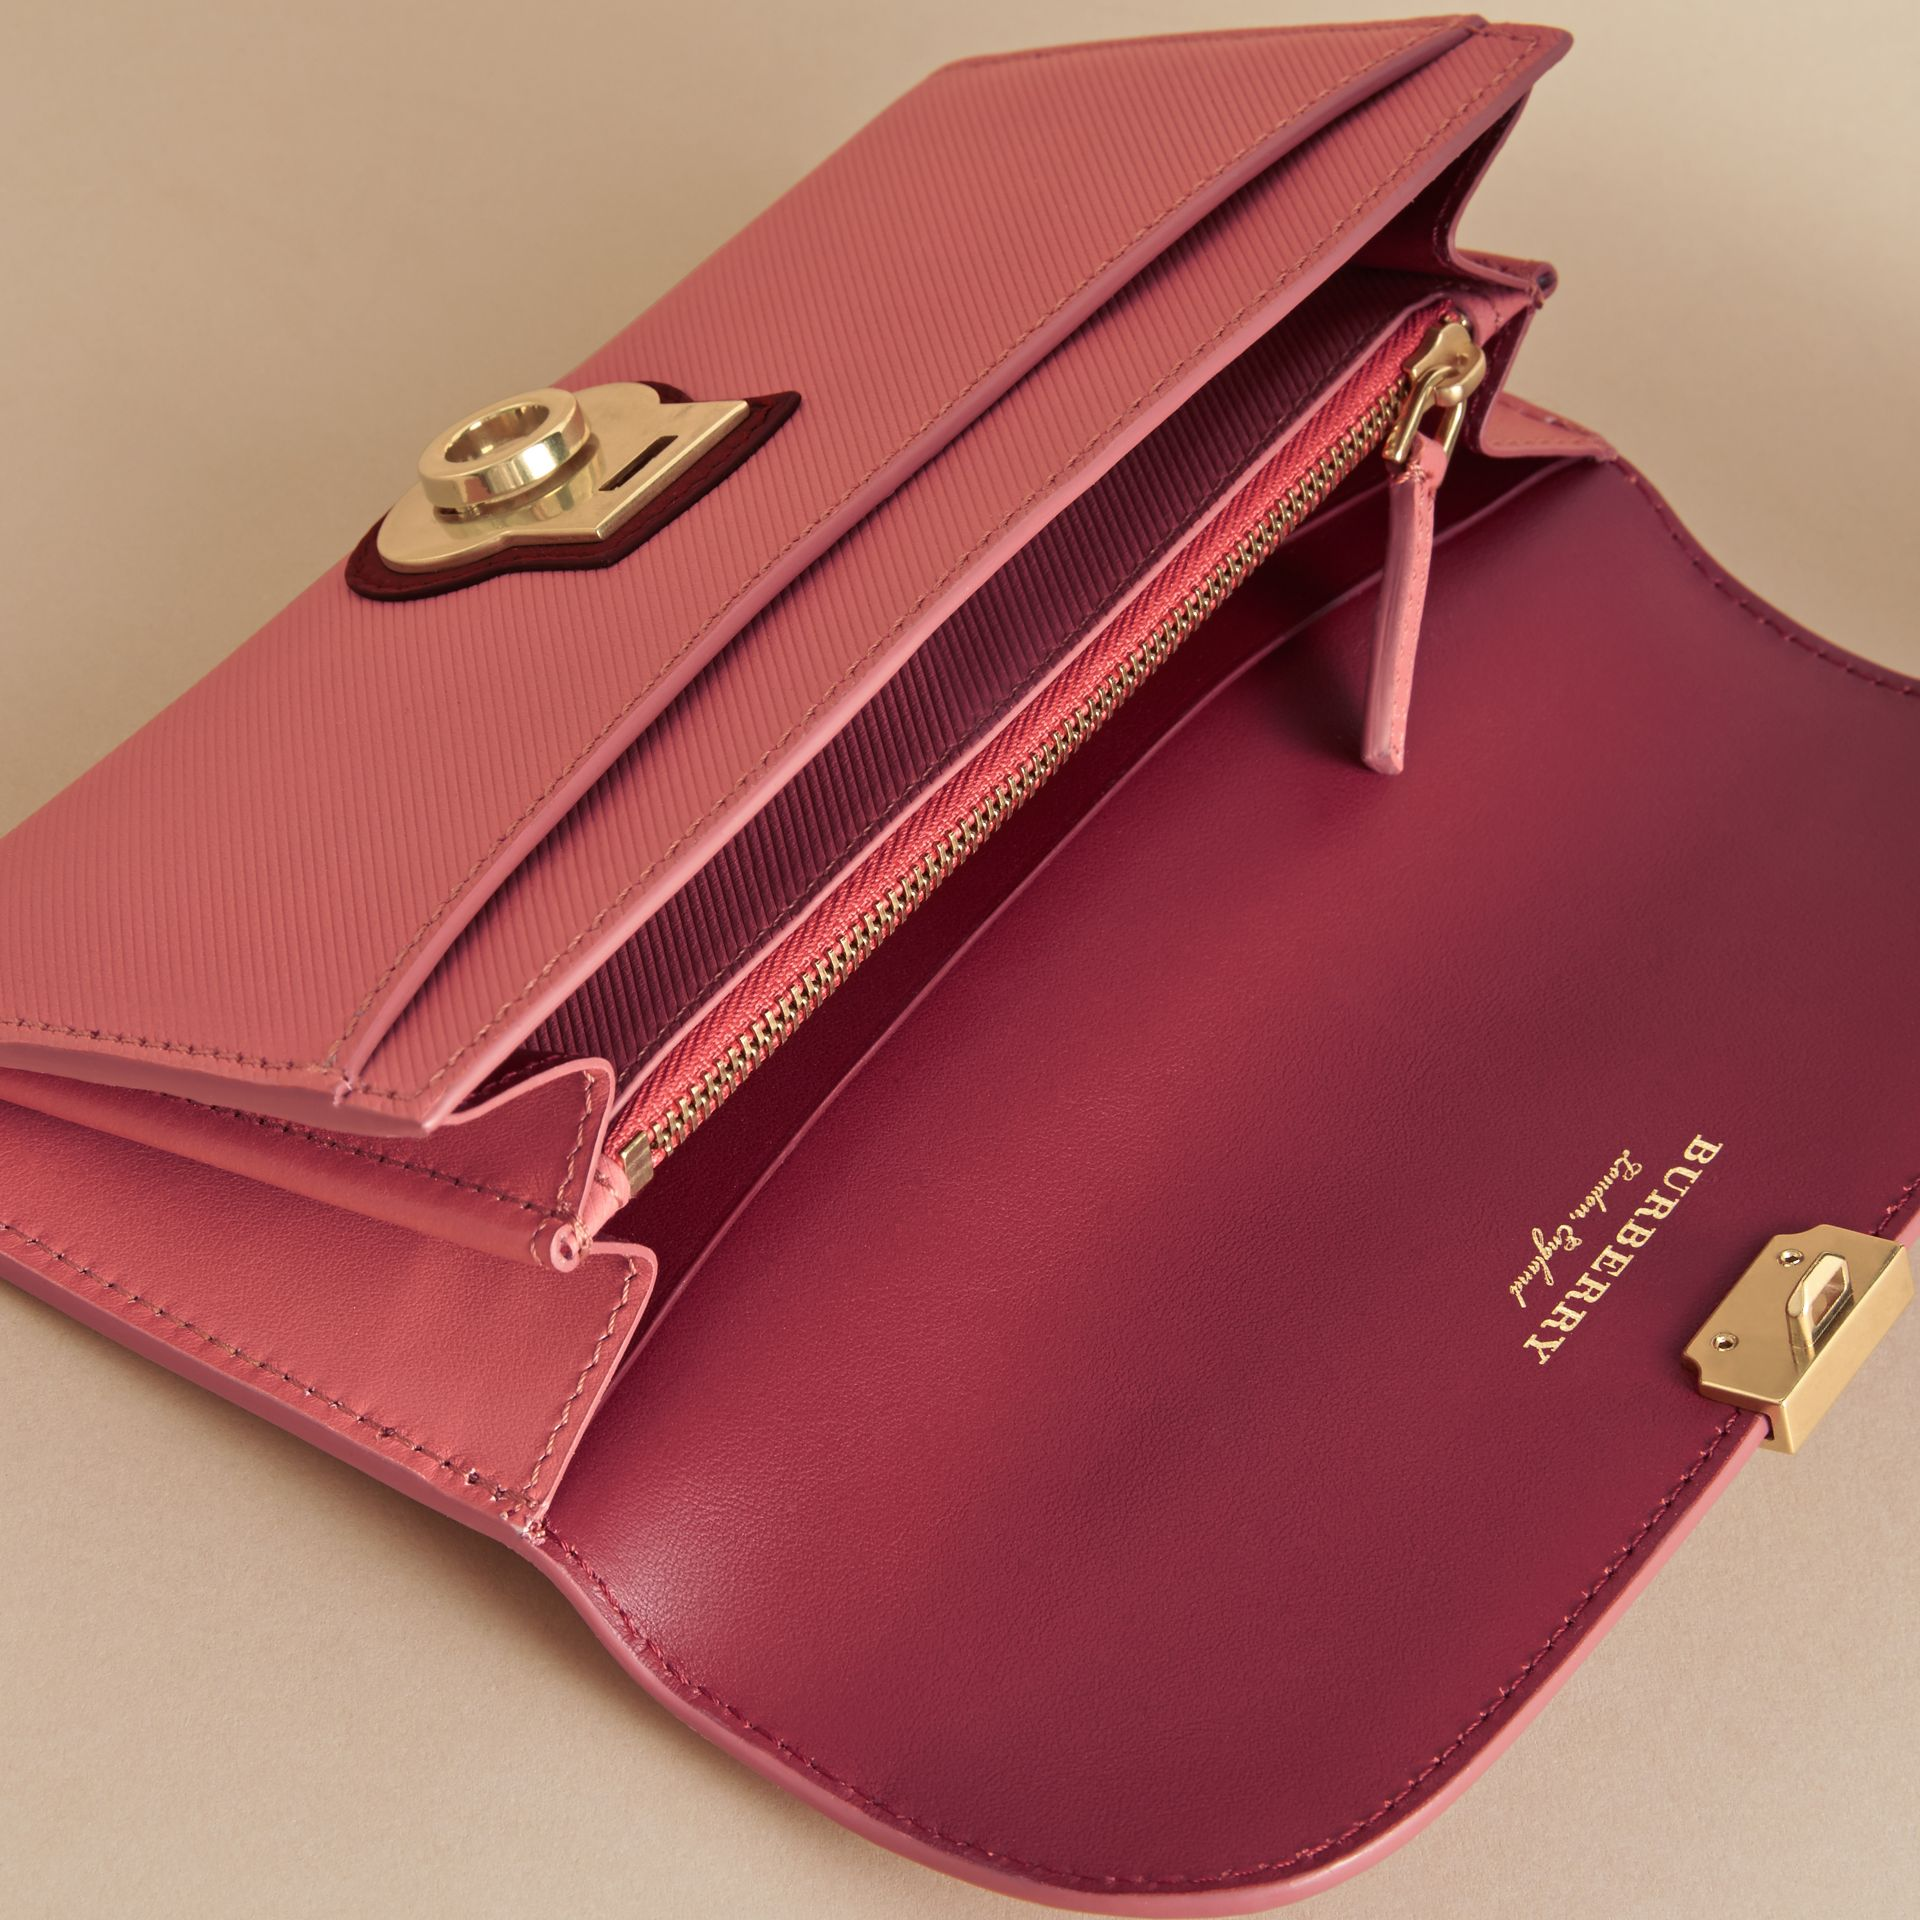 Two-tone Trench Leather Continental Wallet in Blossom Pink/antique Red - Women | Burberry Hong Kong - gallery image 4